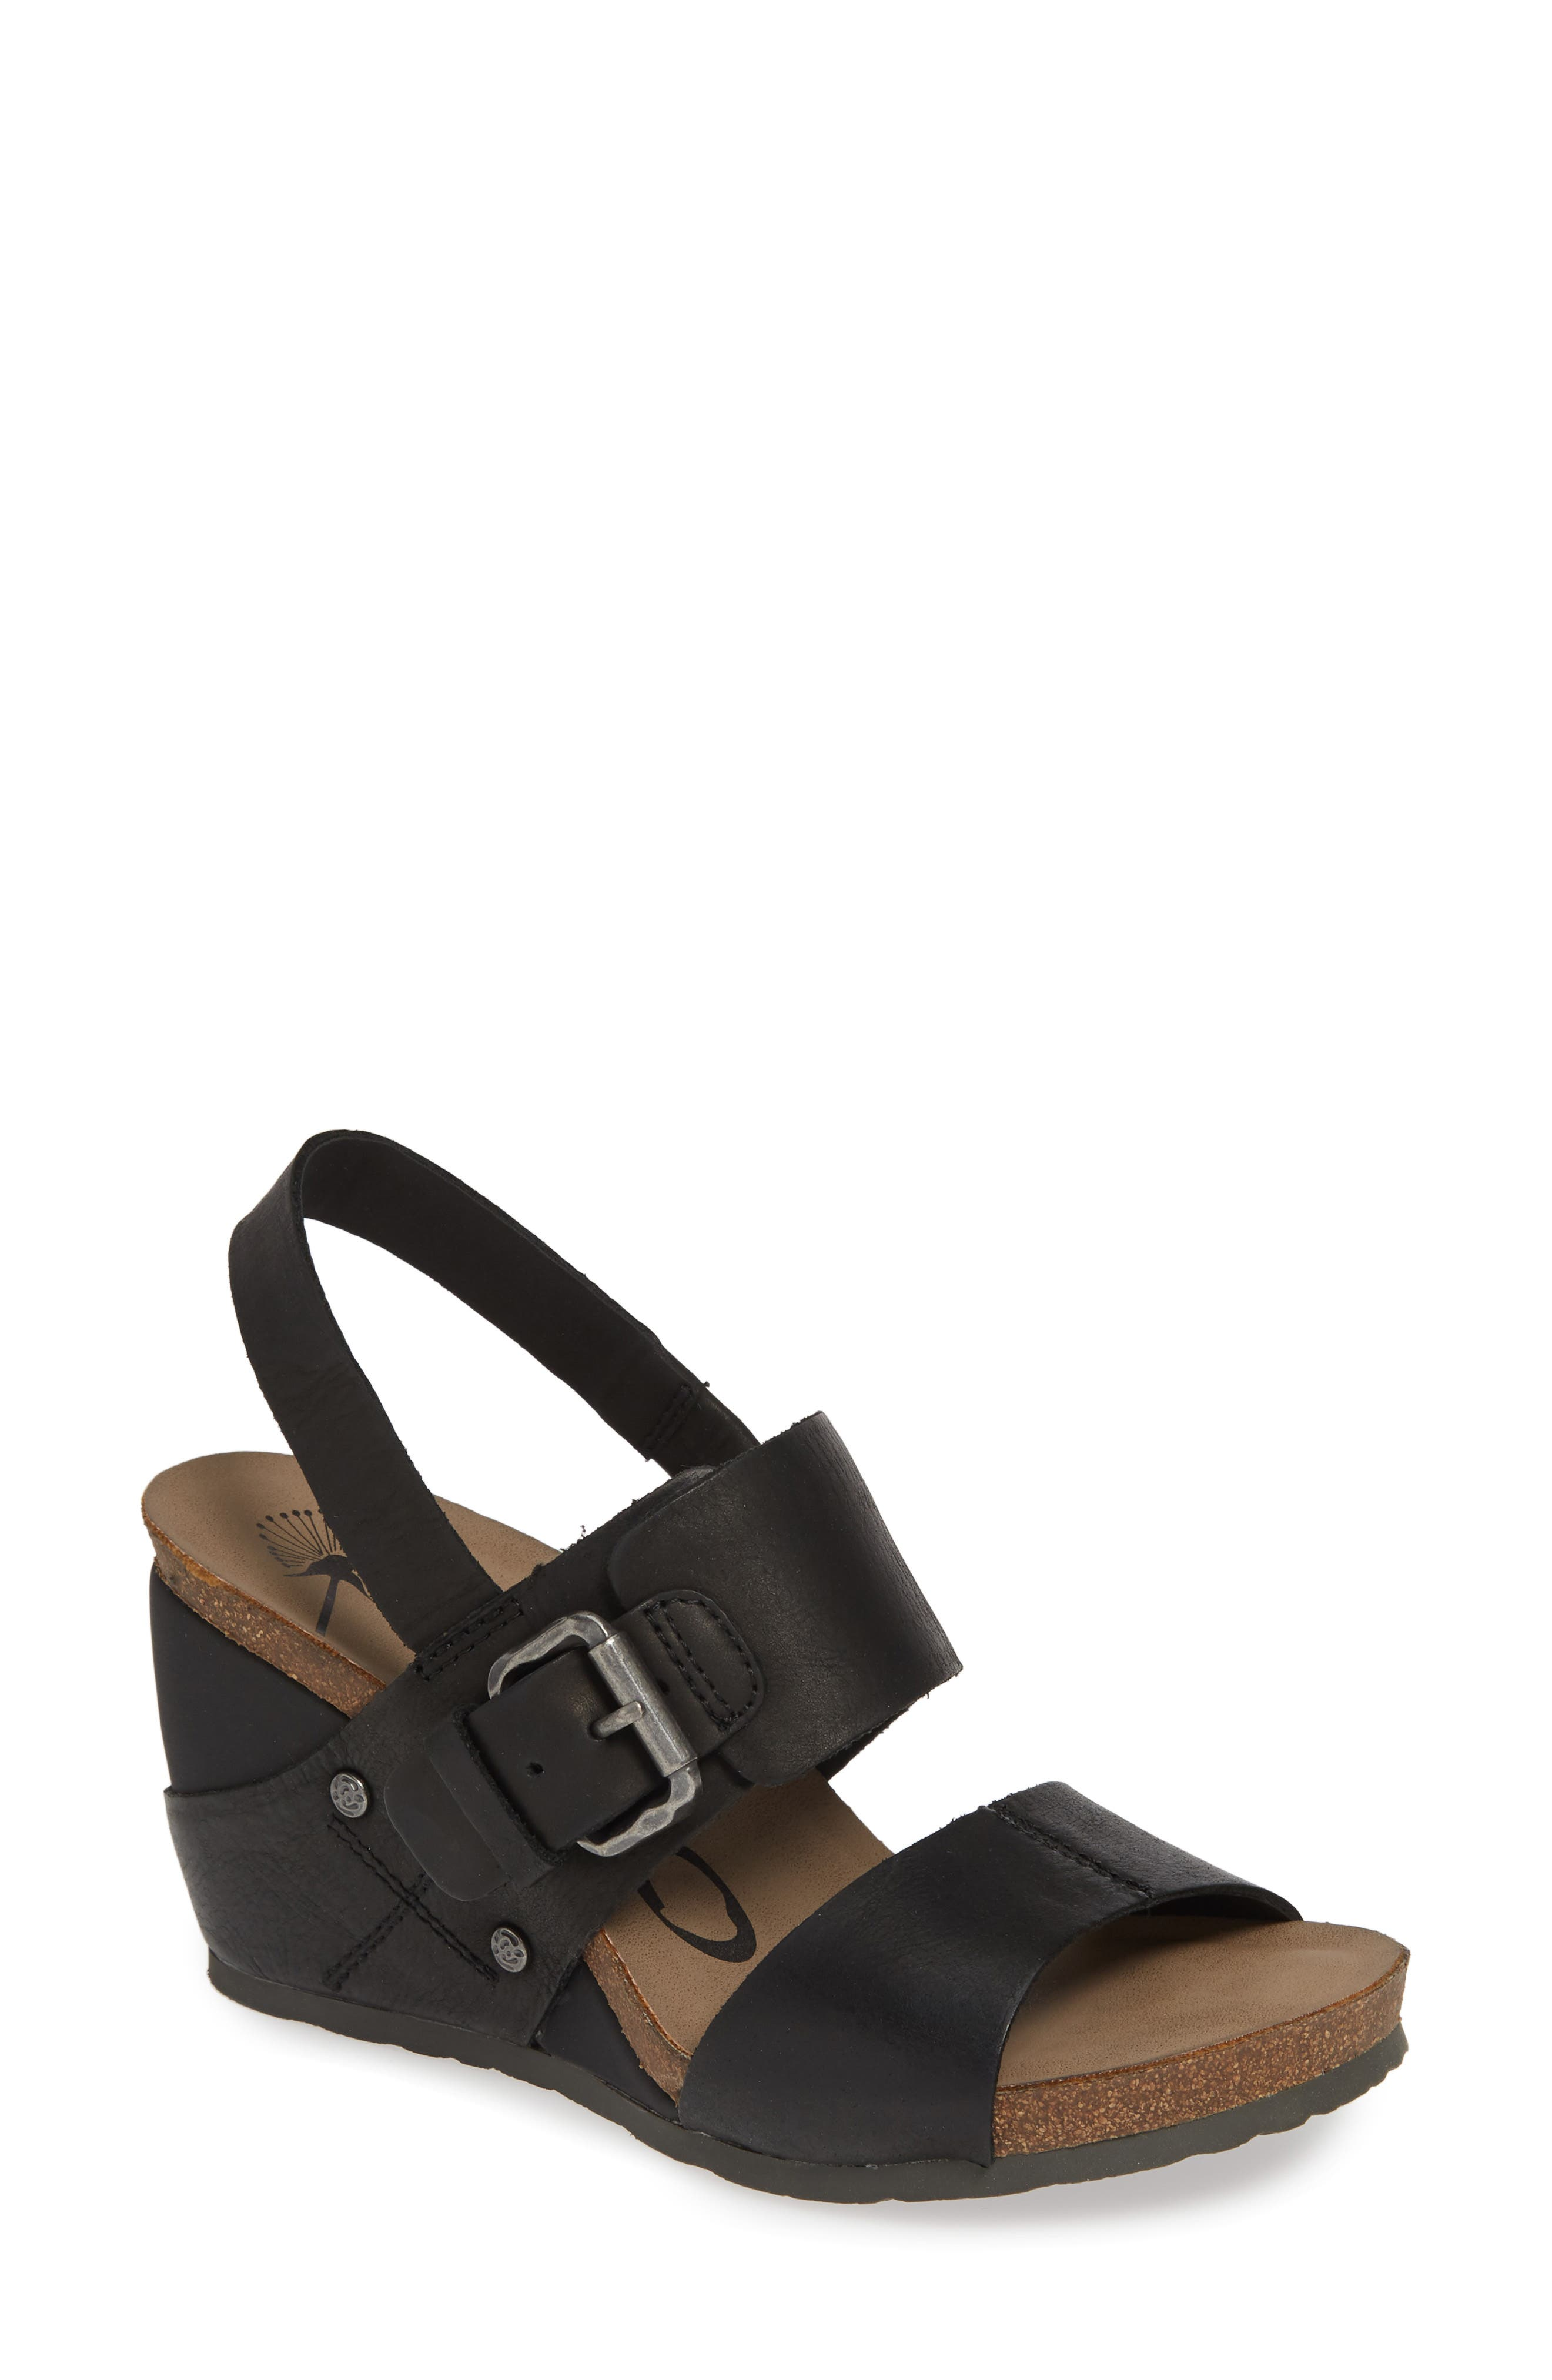 OTBT Overnight Wedge Sandal, Main, color, BLACK LEATHER